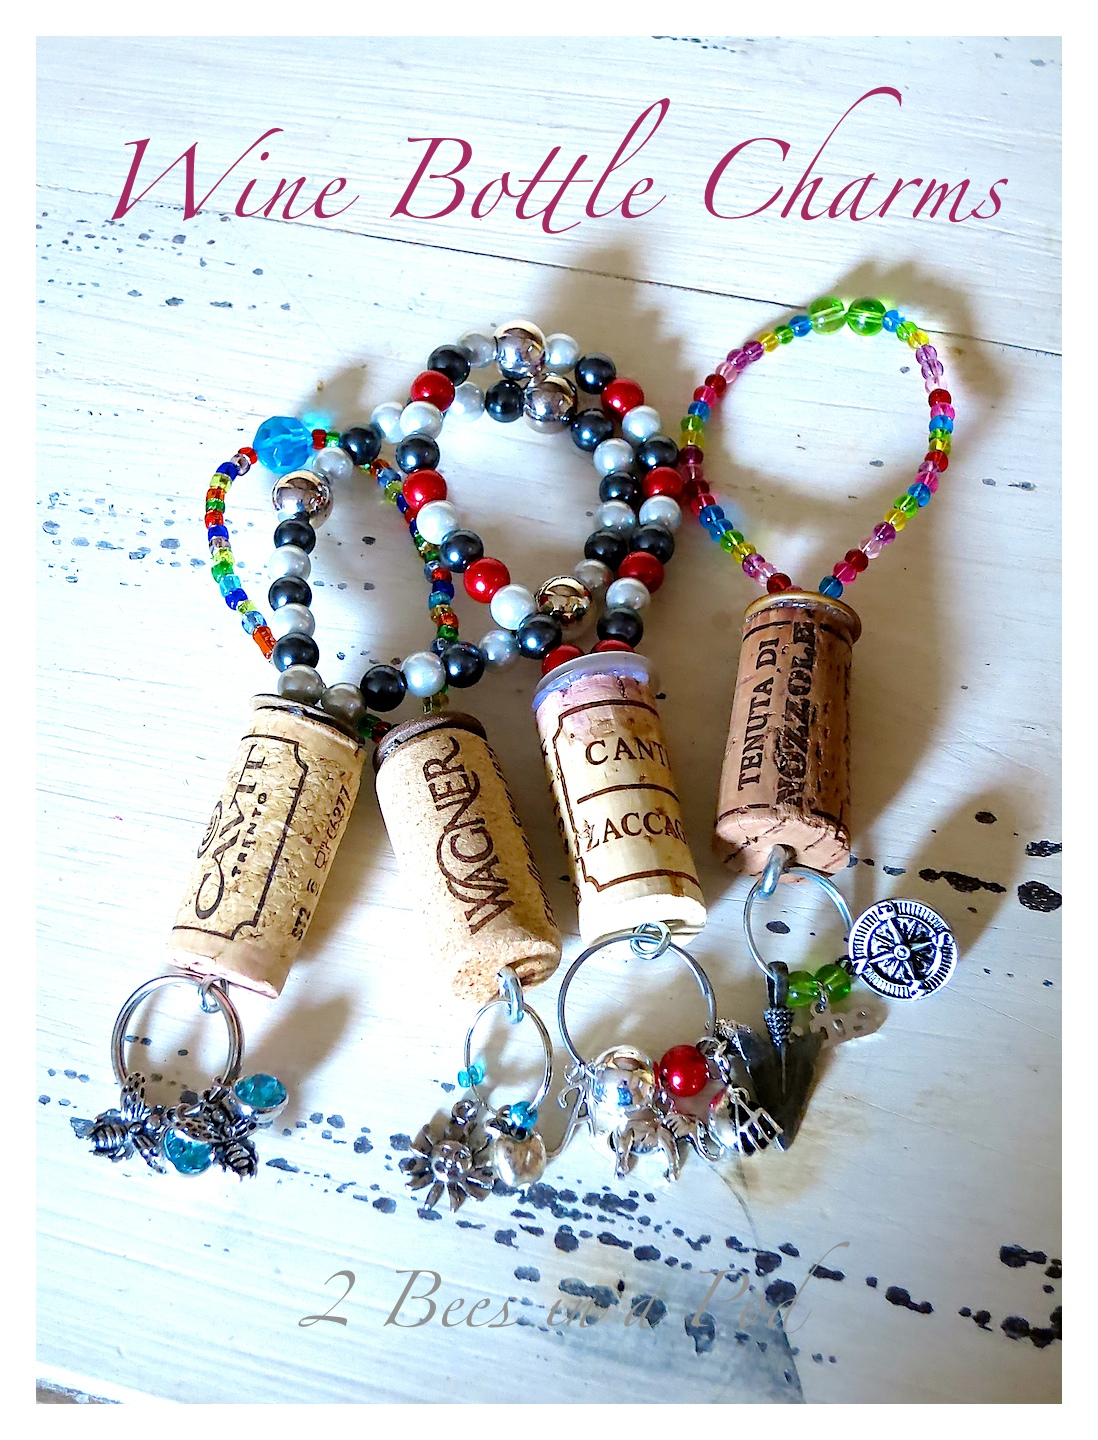 17 ideas for easy diy holiday hostess gifts 2 bees in a pod for Diy wine bottle gifts